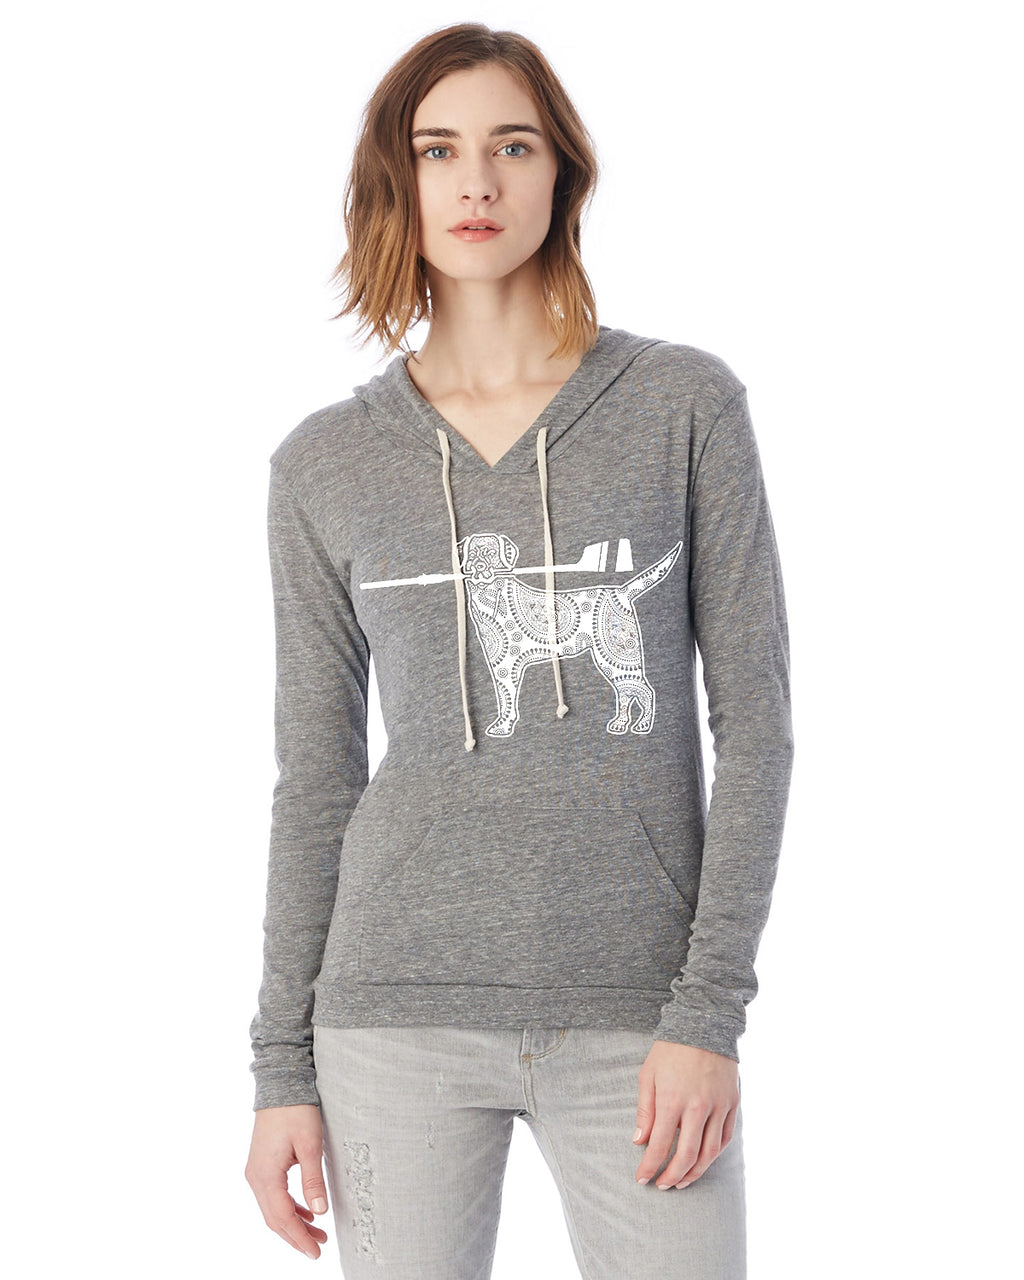 Dog with Oar Crew Eco Jersey Pullover Hoodie Animal Sports Collection